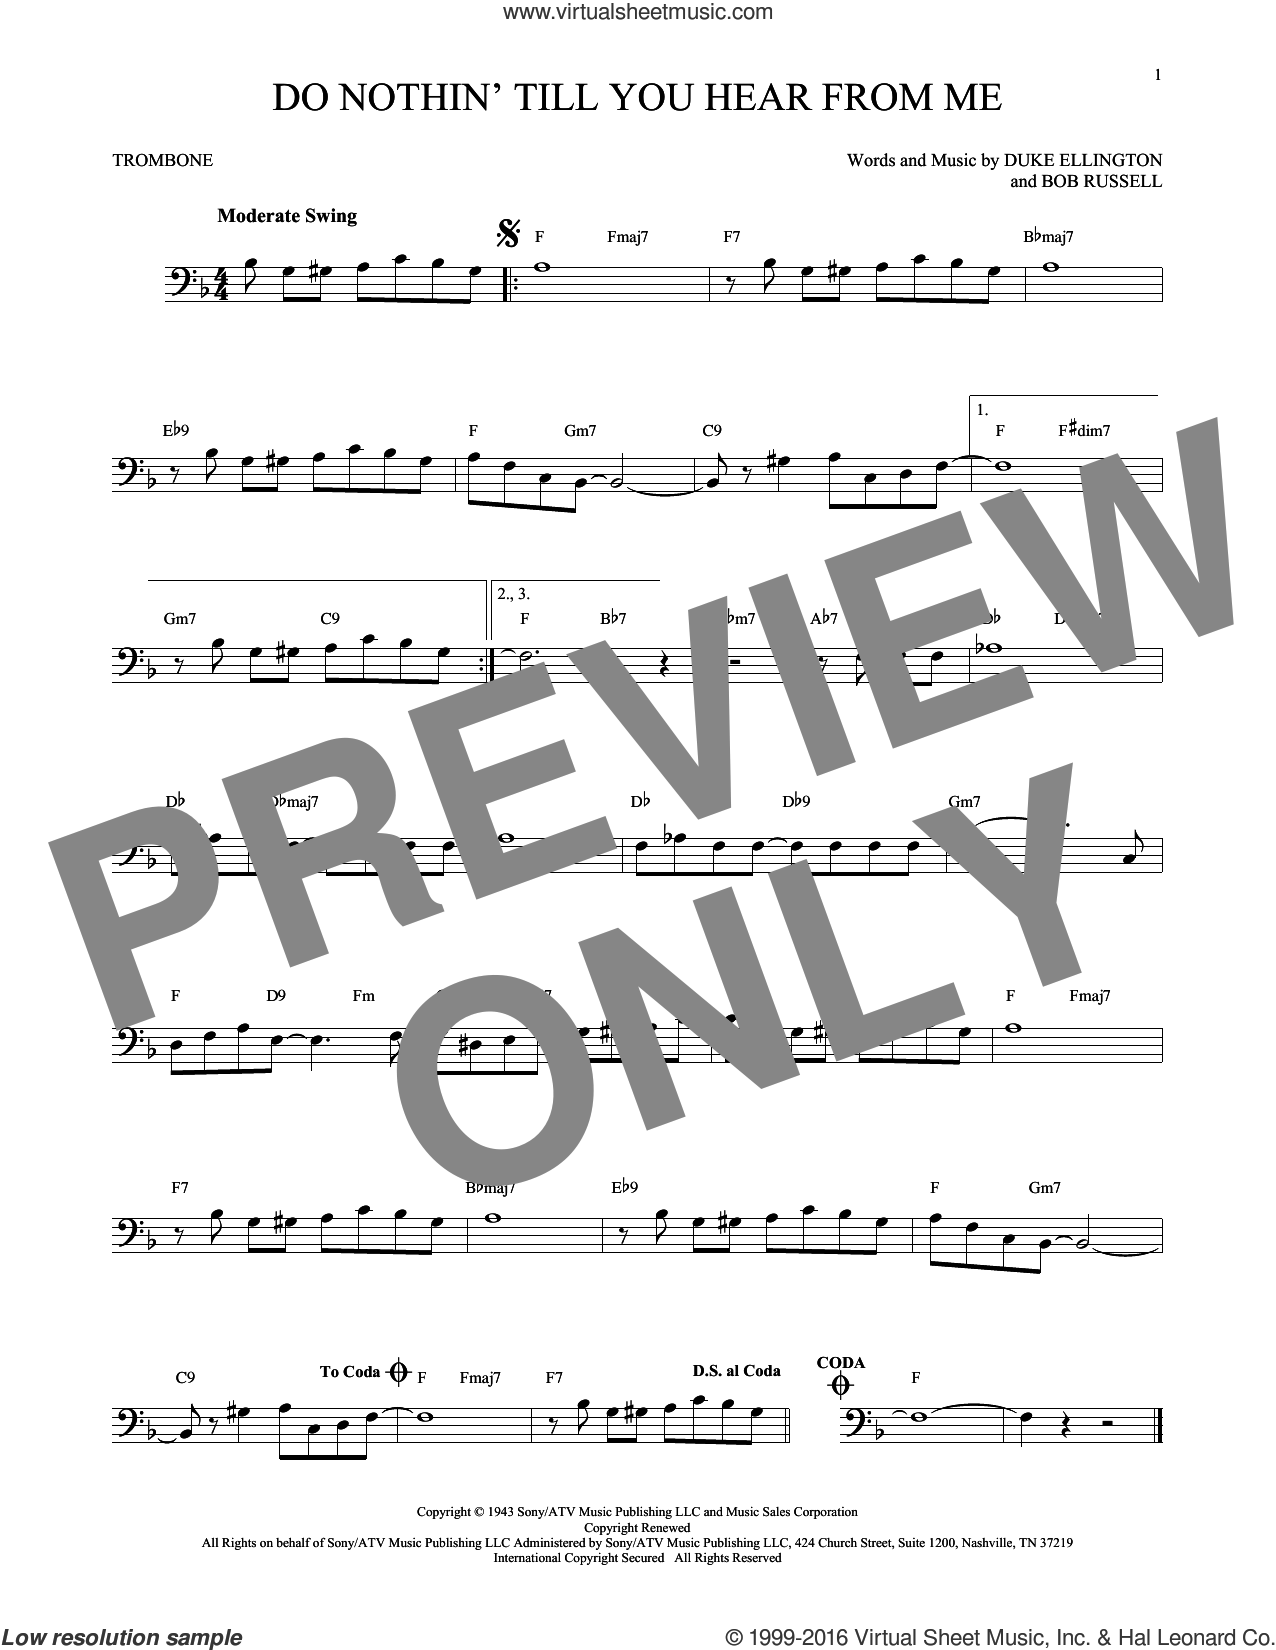 Do Nothin' Till You Hear From Me sheet music for trombone solo by Duke Ellington and Bob Russell, intermediate skill level